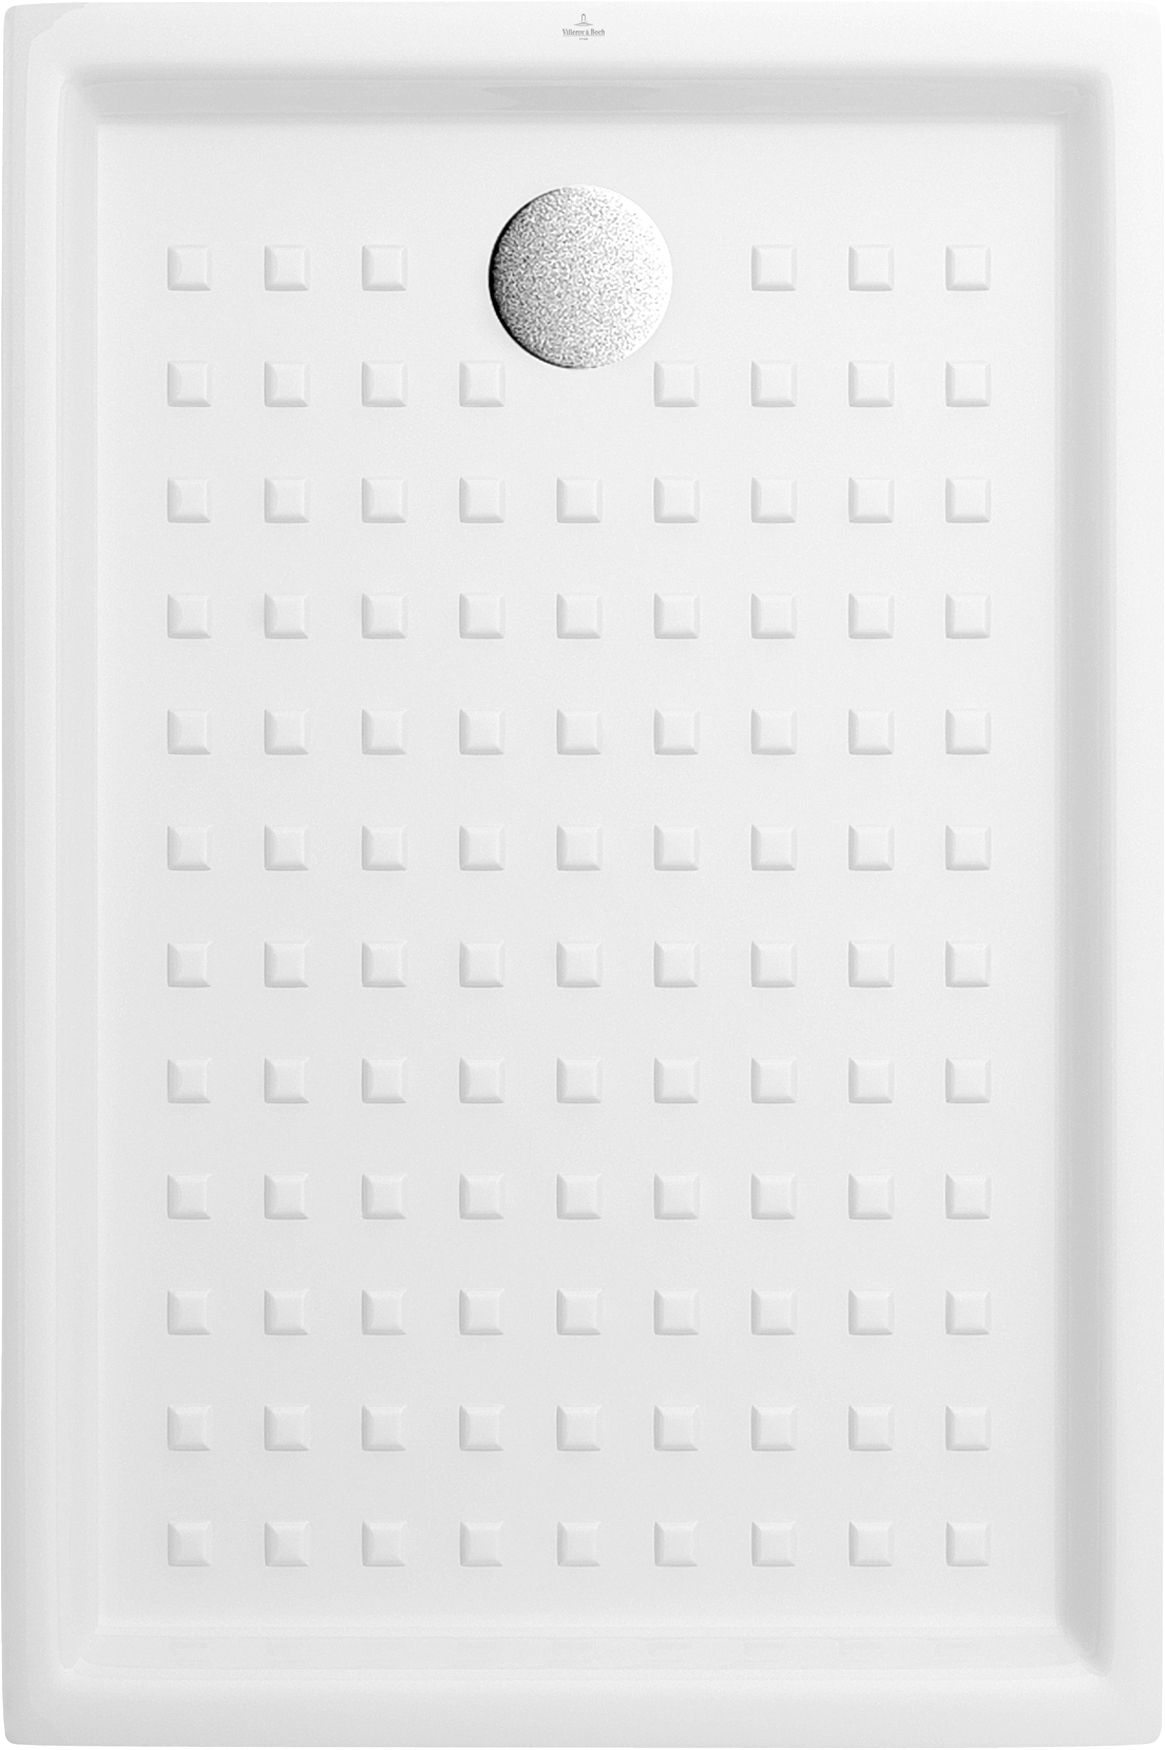 duschwanne rechteck 622212 villeroy boch. Black Bedroom Furniture Sets. Home Design Ideas